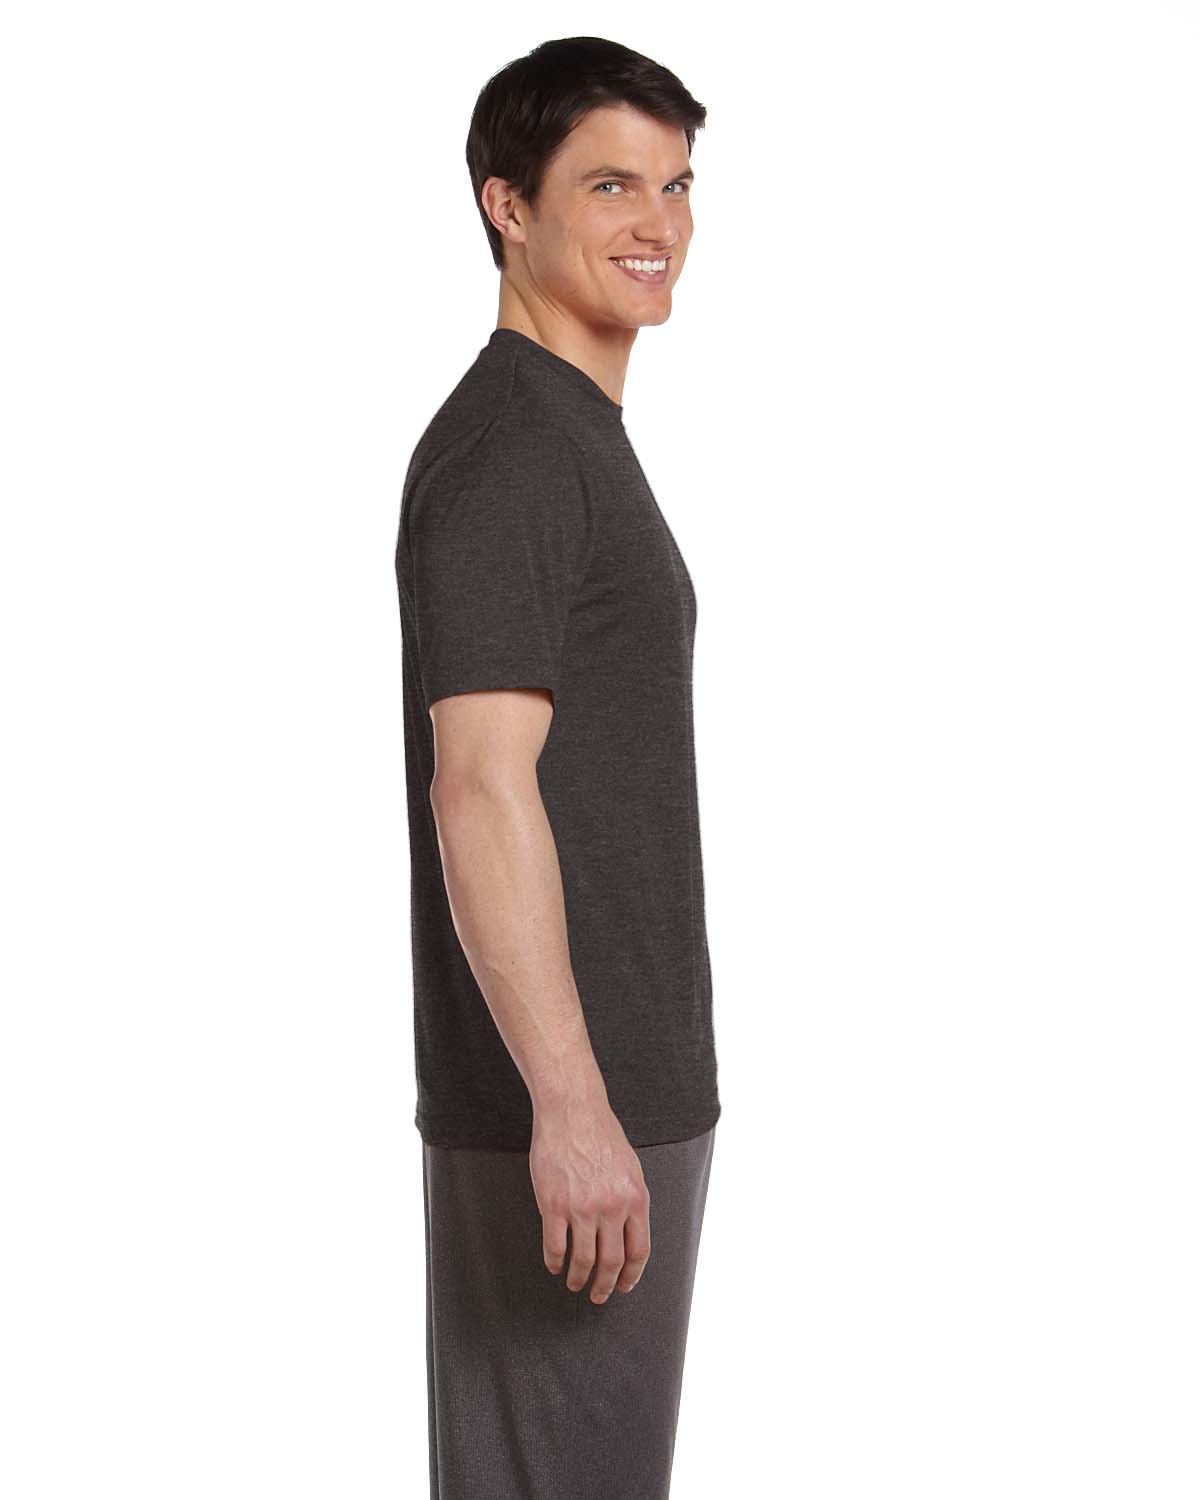 ALL Sport Men/'s Performance Dry-Fit Wicking 100/% Polyester S-XL T-Shirt R-M1009